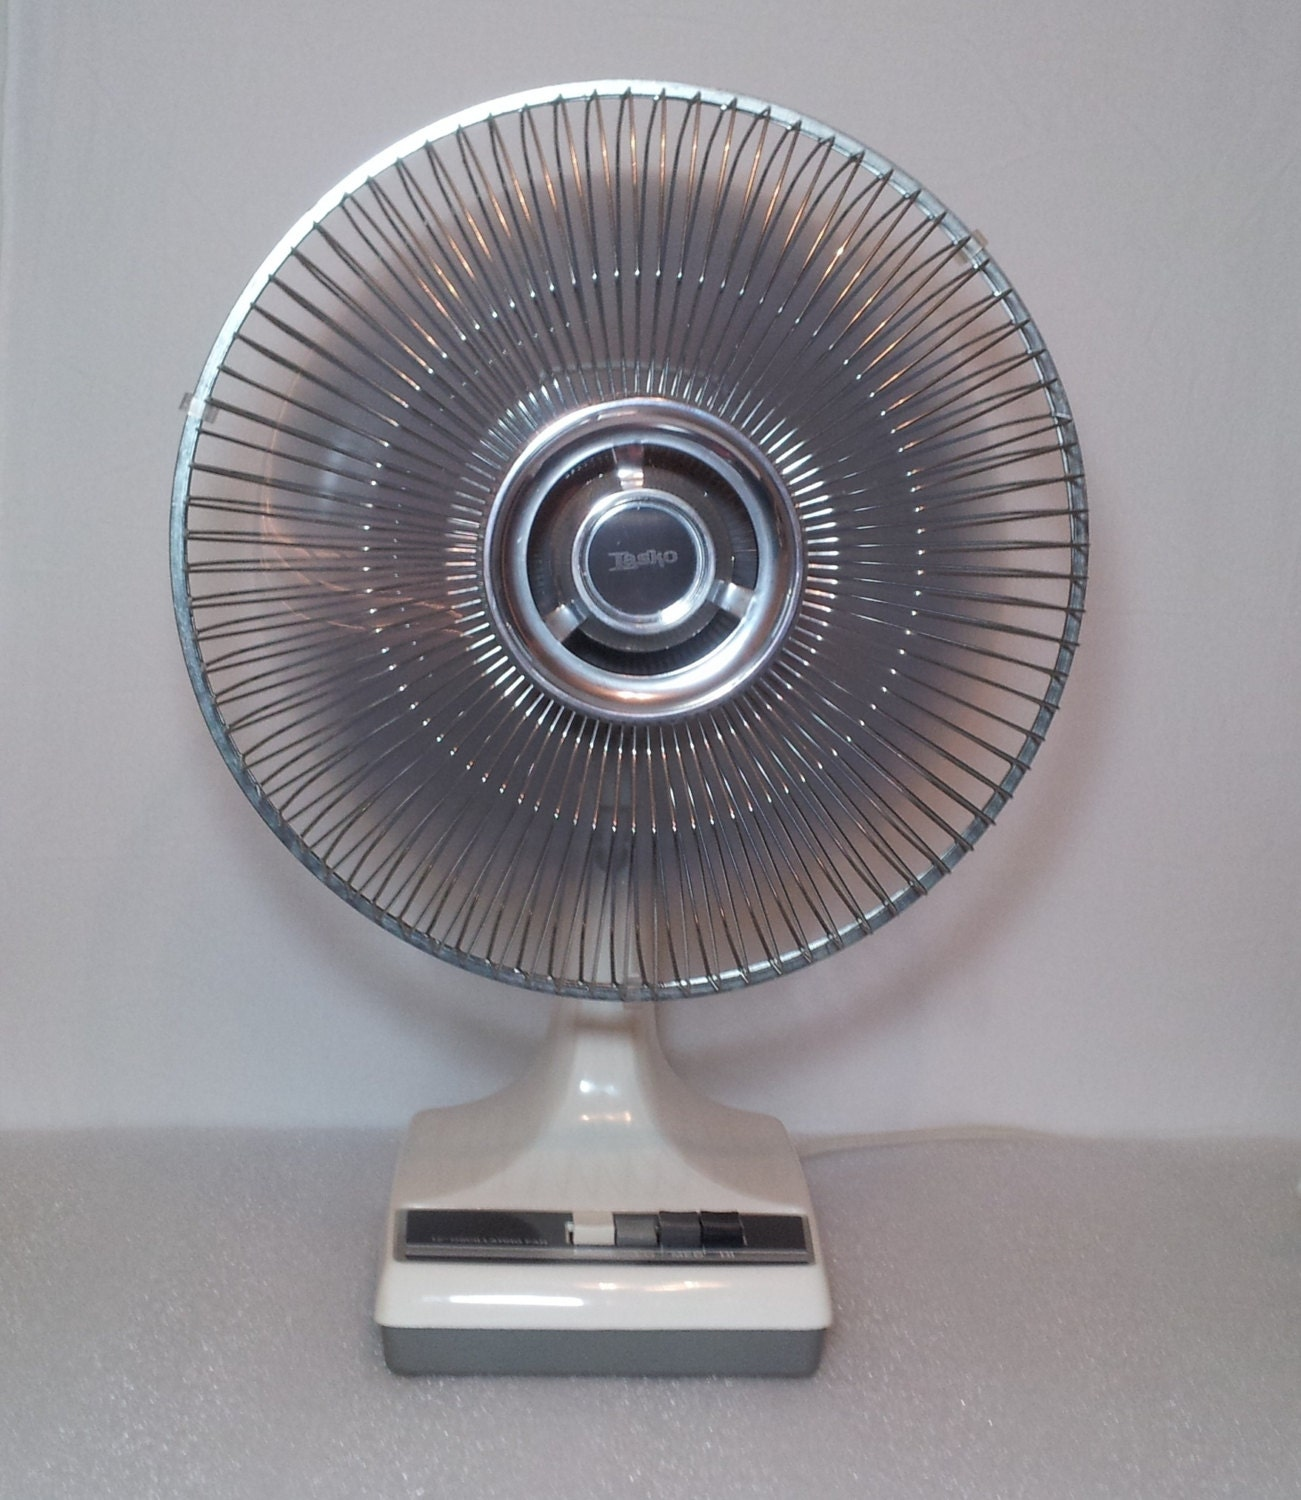 Lasko Oscillating Fan : Vintage lasko oscillating fan style k cr by